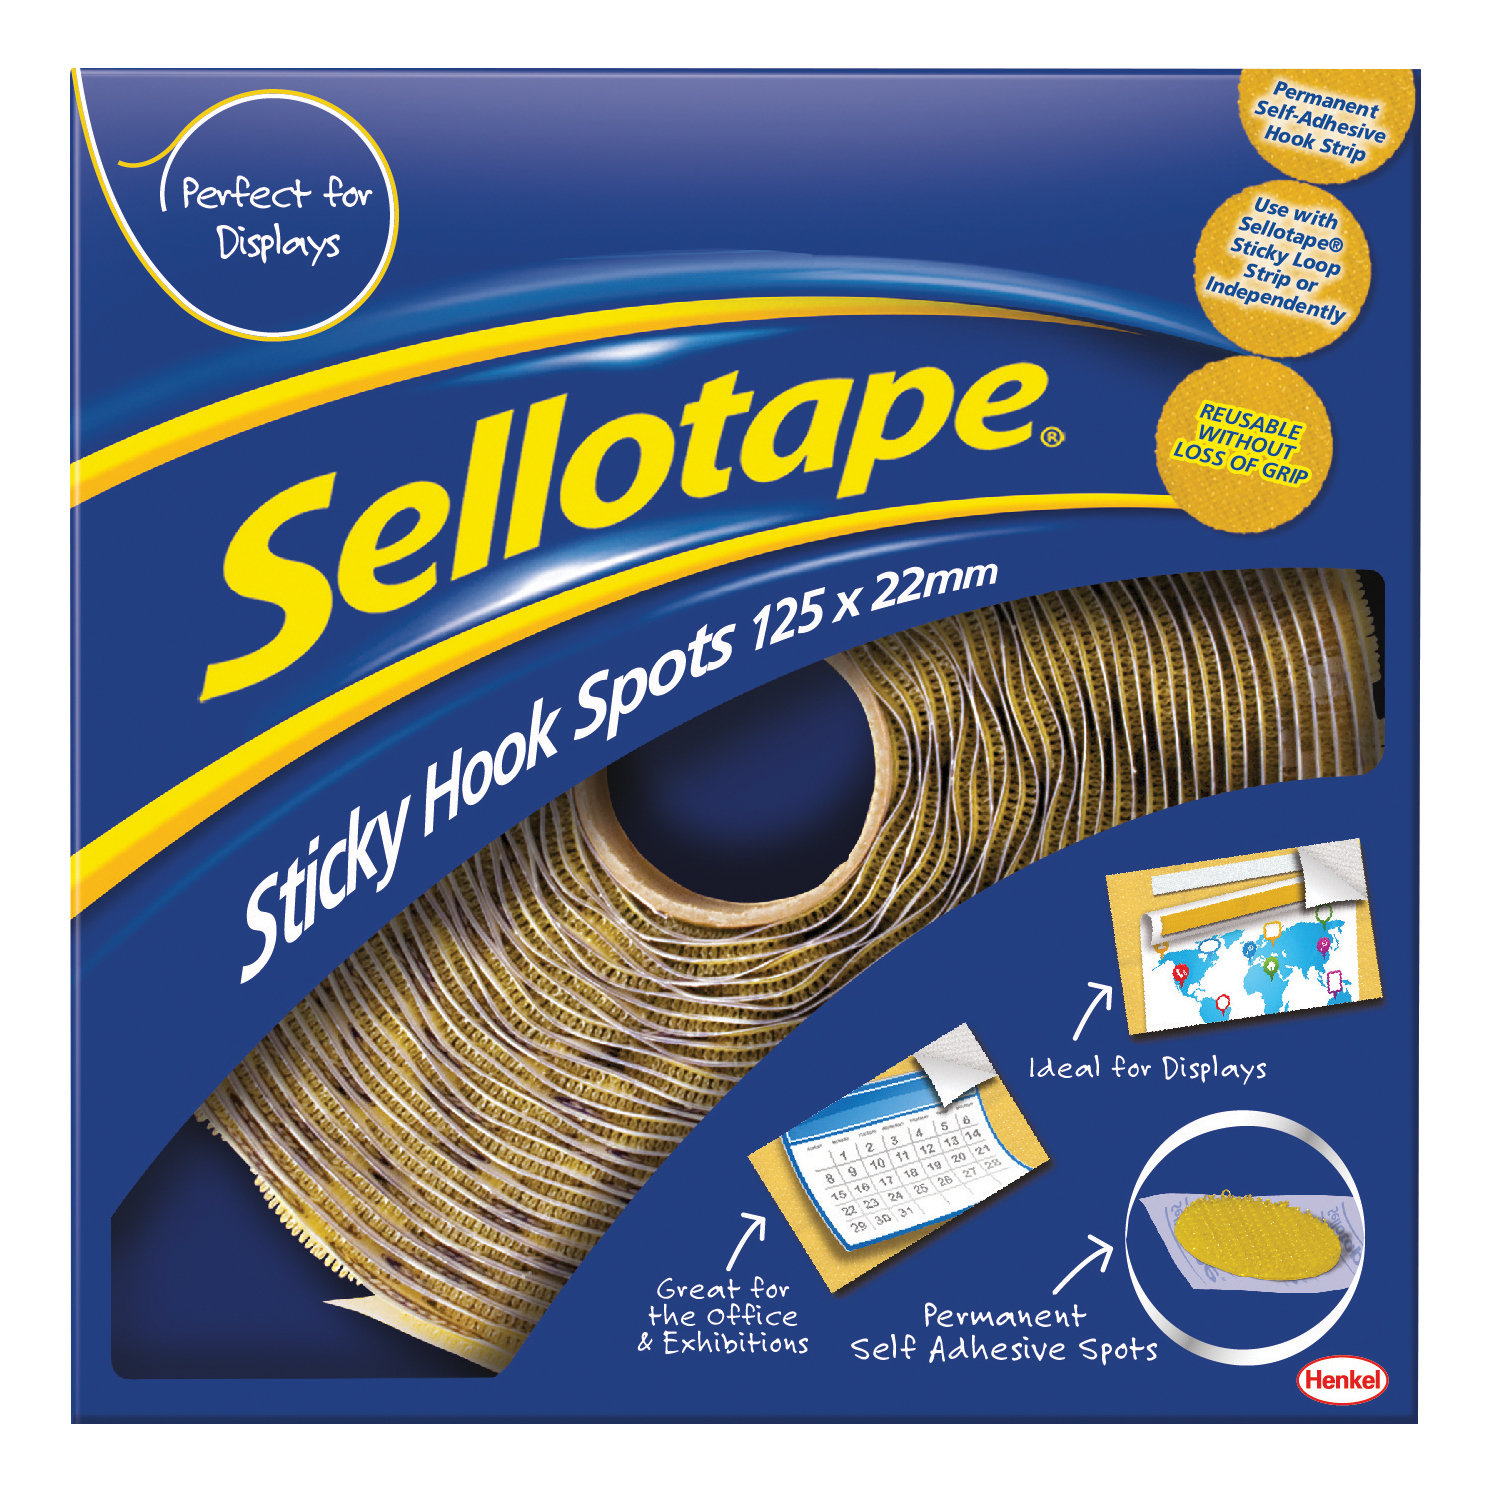 Sellotape Permanent Sticky Hook Spots in Handy Dispenser of 125 Spots Diameter 22mm Yellow Ref 1445185